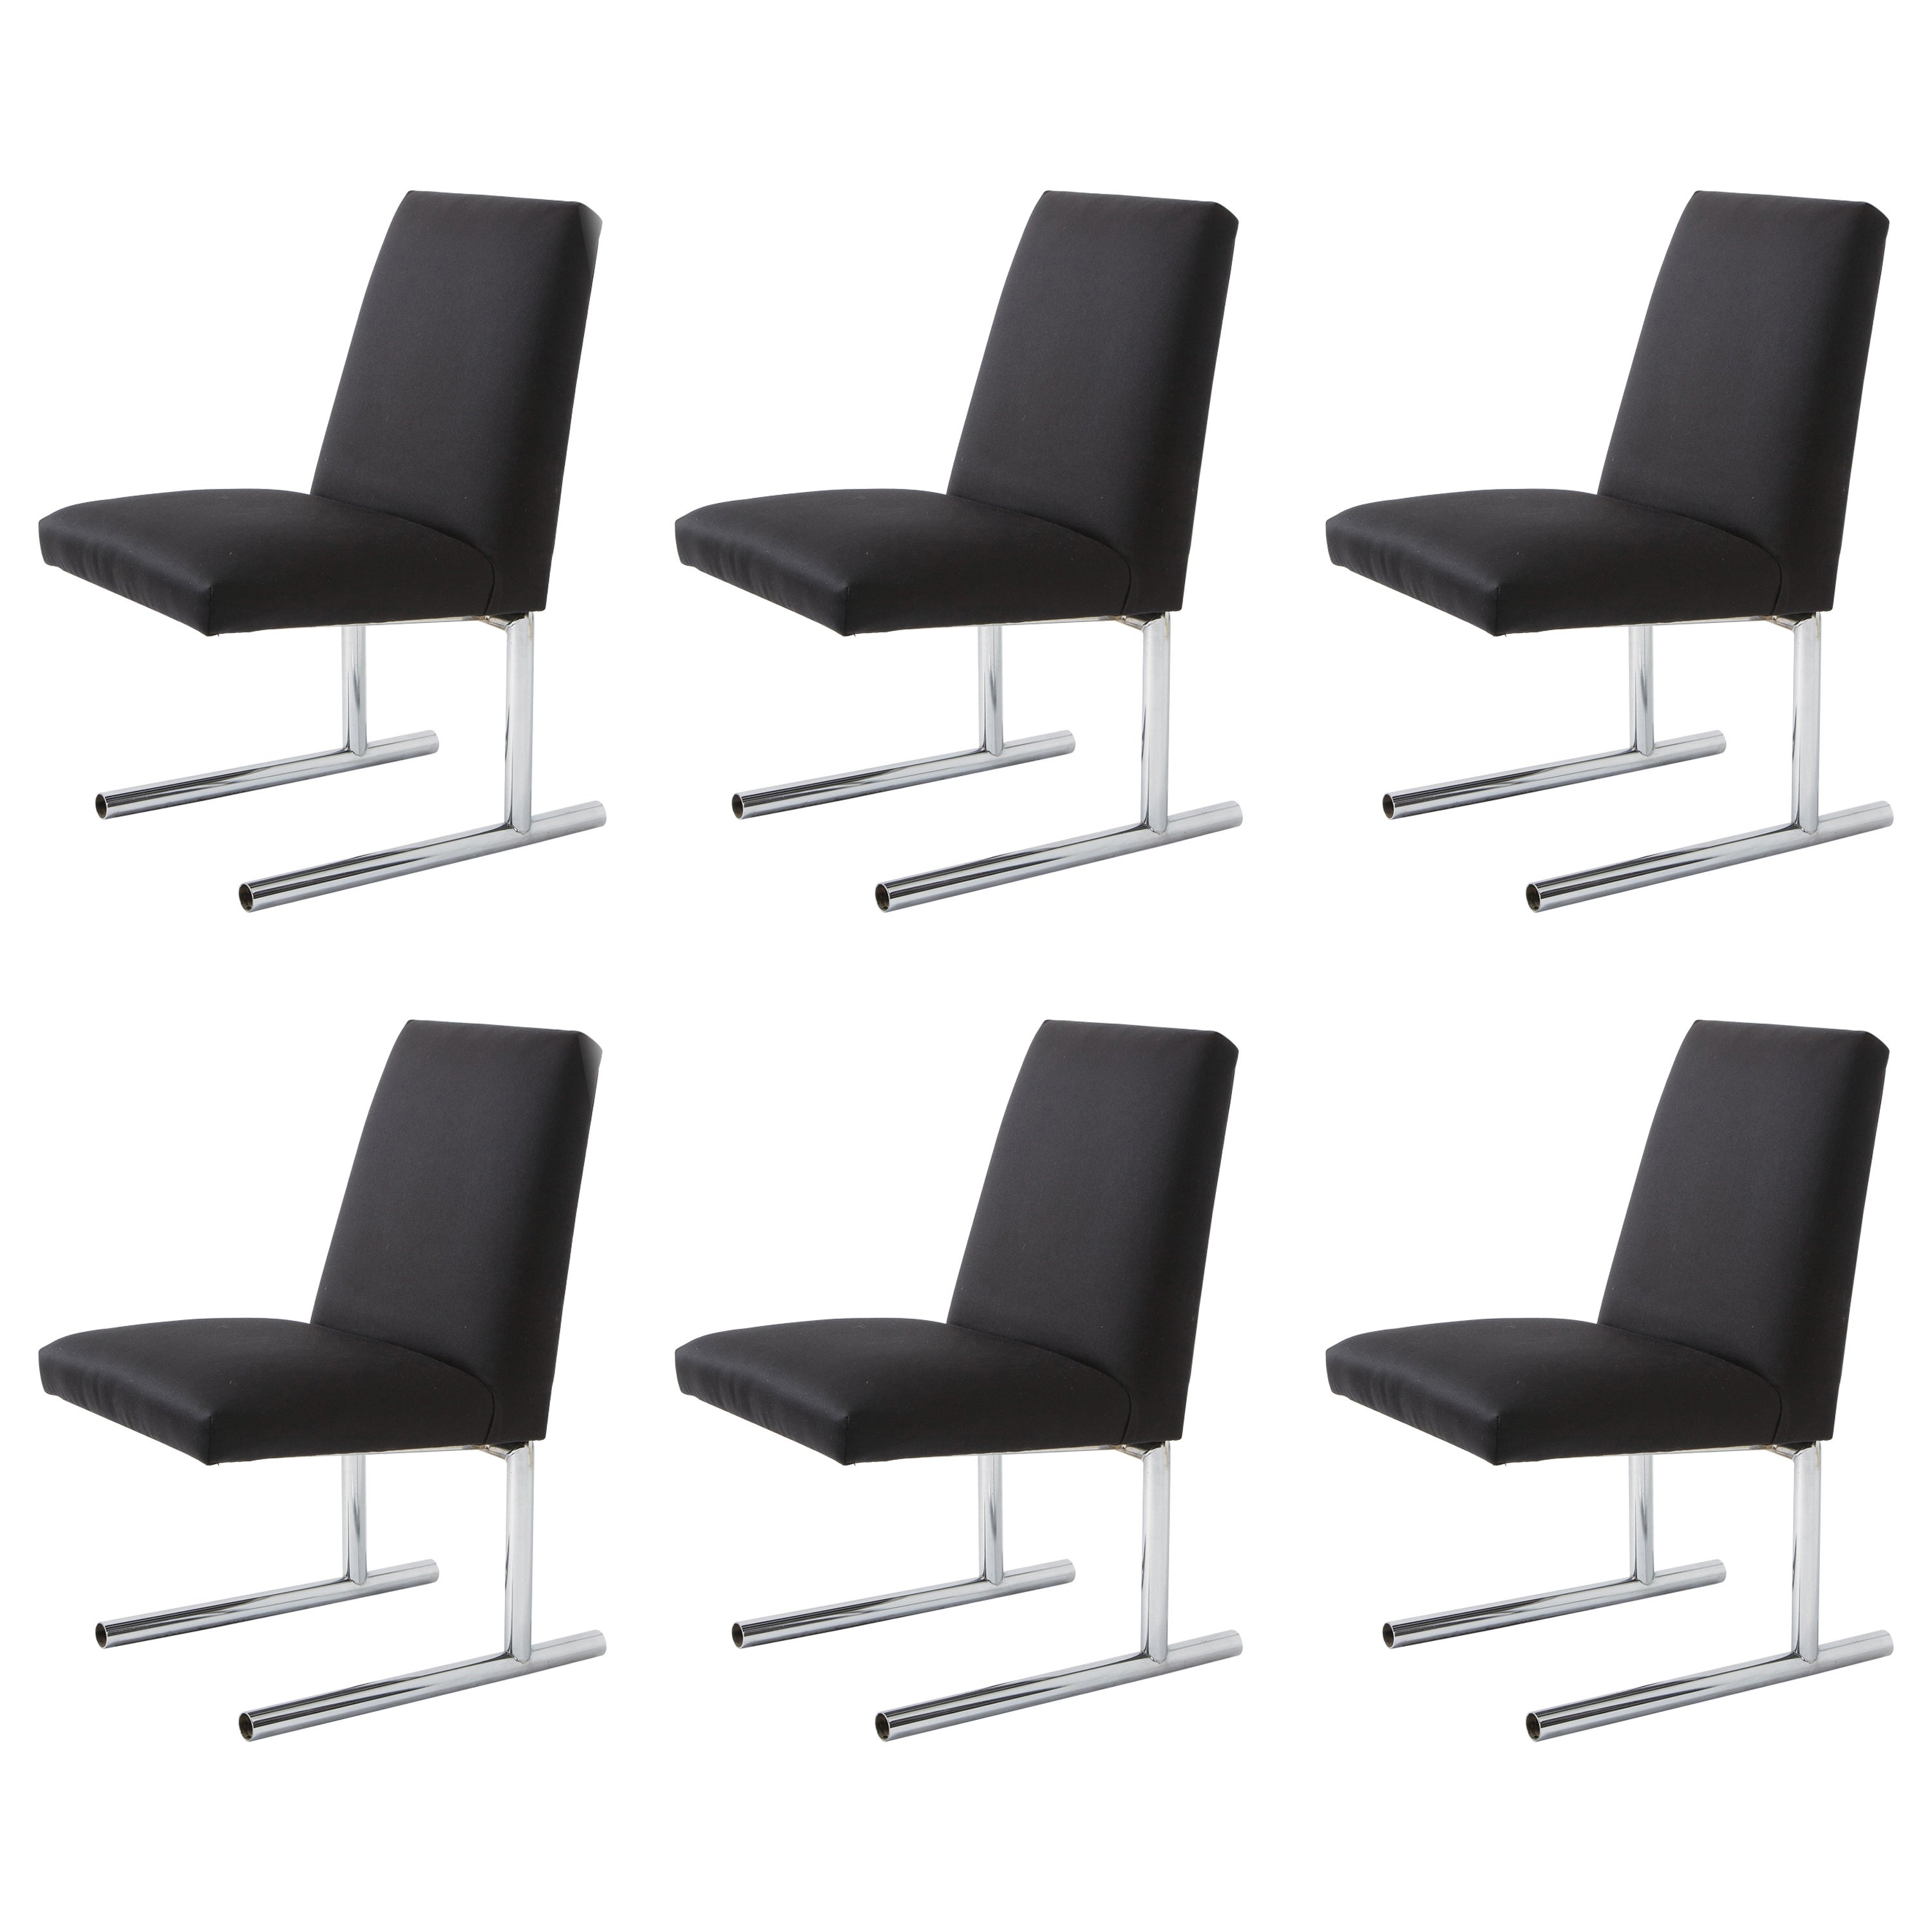 Set of 6 Italian Dining Chairs with Tubed Chrome Legs, 1980s